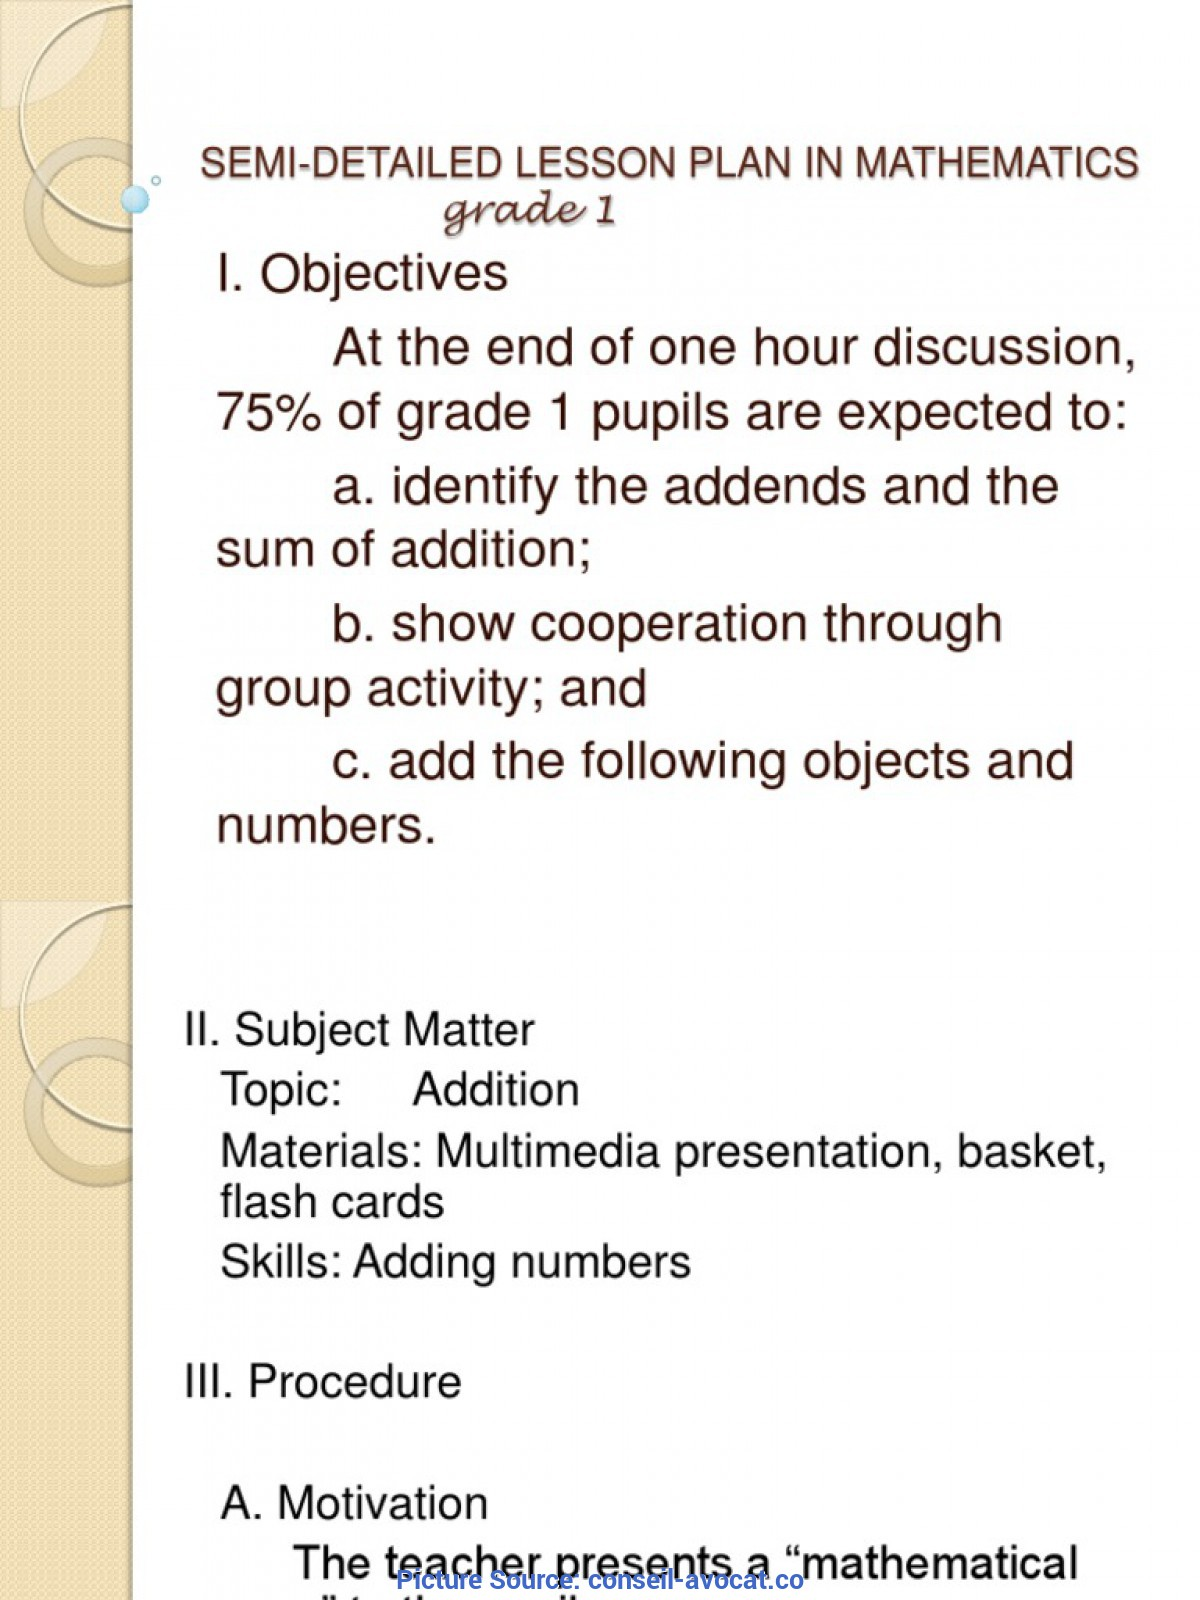 Typical Detailed Lesson Plan Outline 8 A Lesson Plan Format Free Consignment Contract Temp